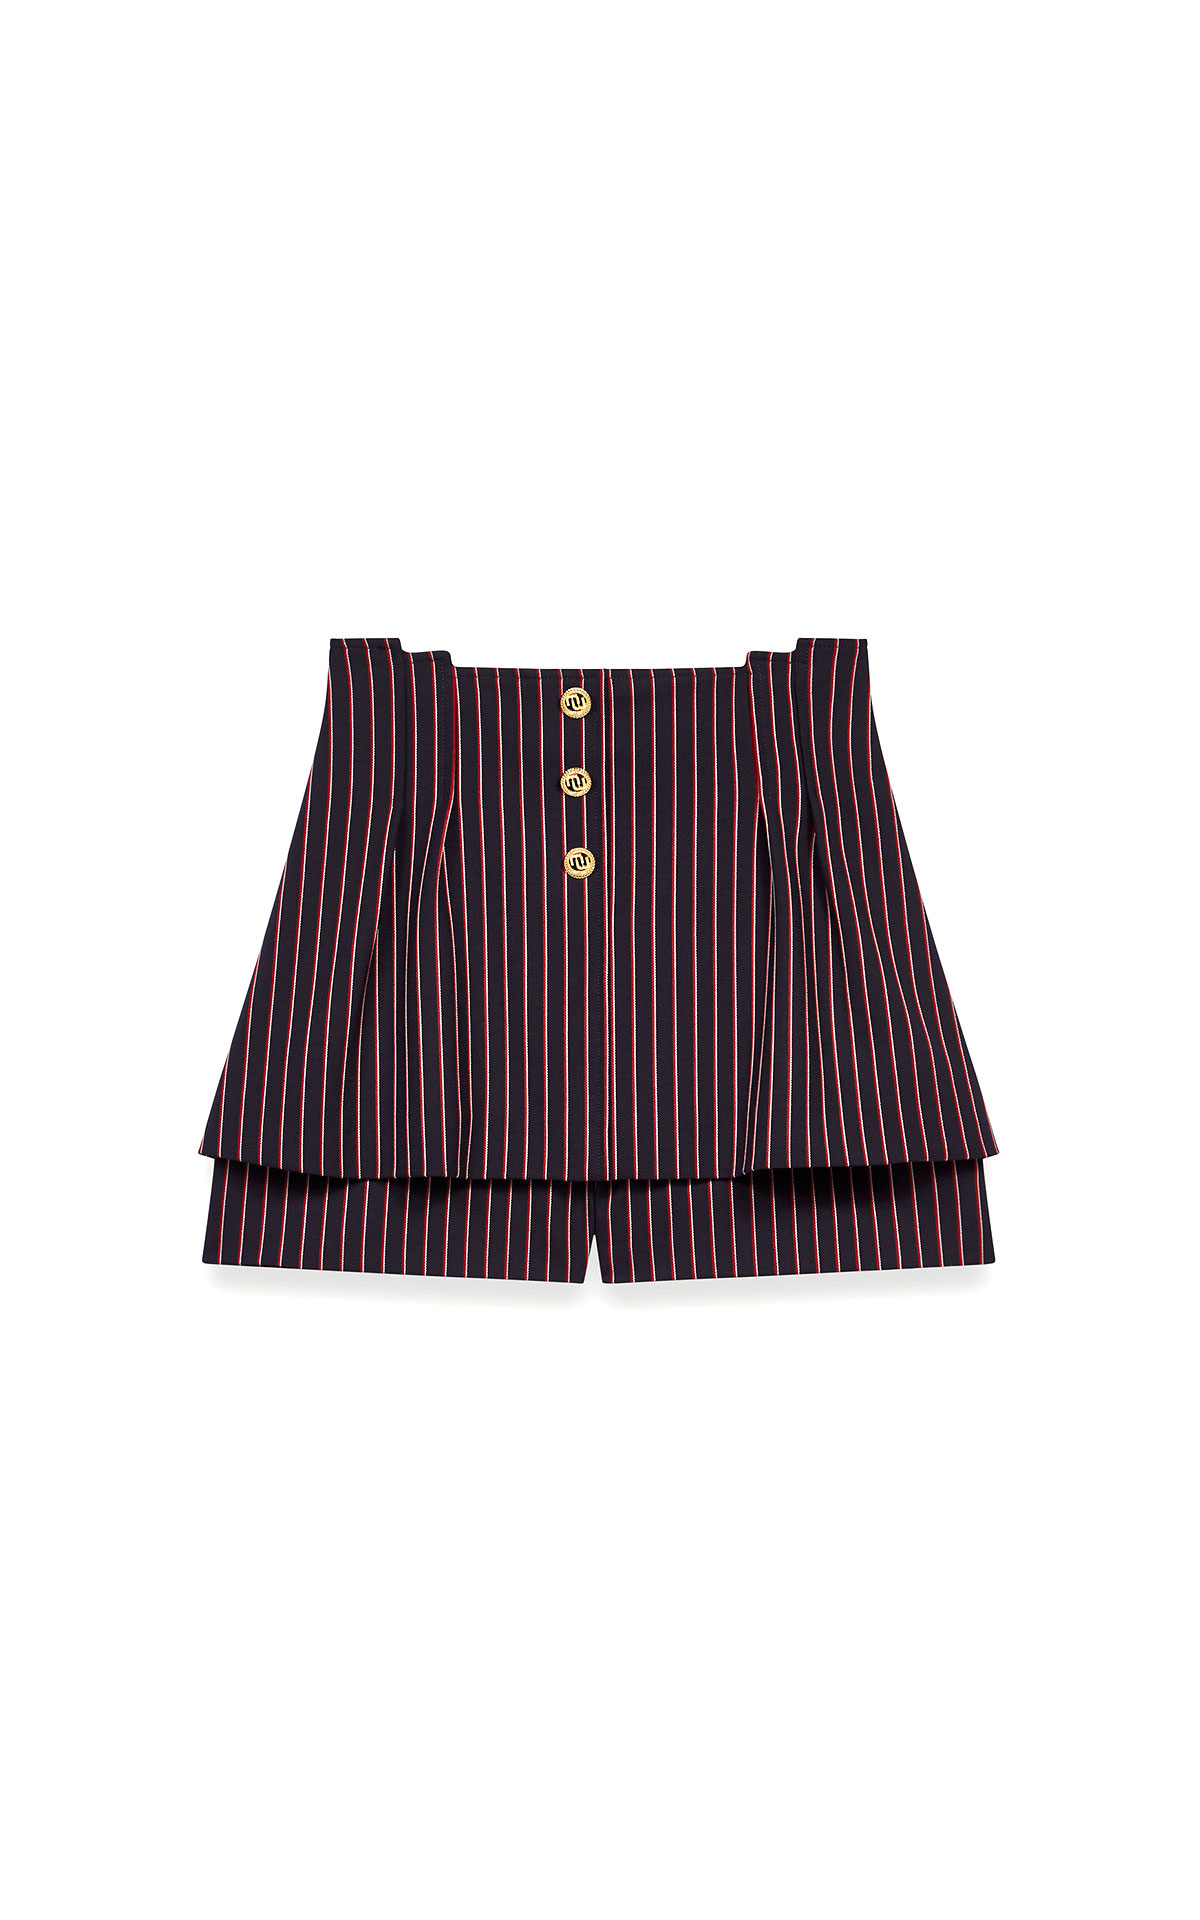 Maje trompe-l'oeil-effect striped shorts at The Bicester Village Shopping Collection